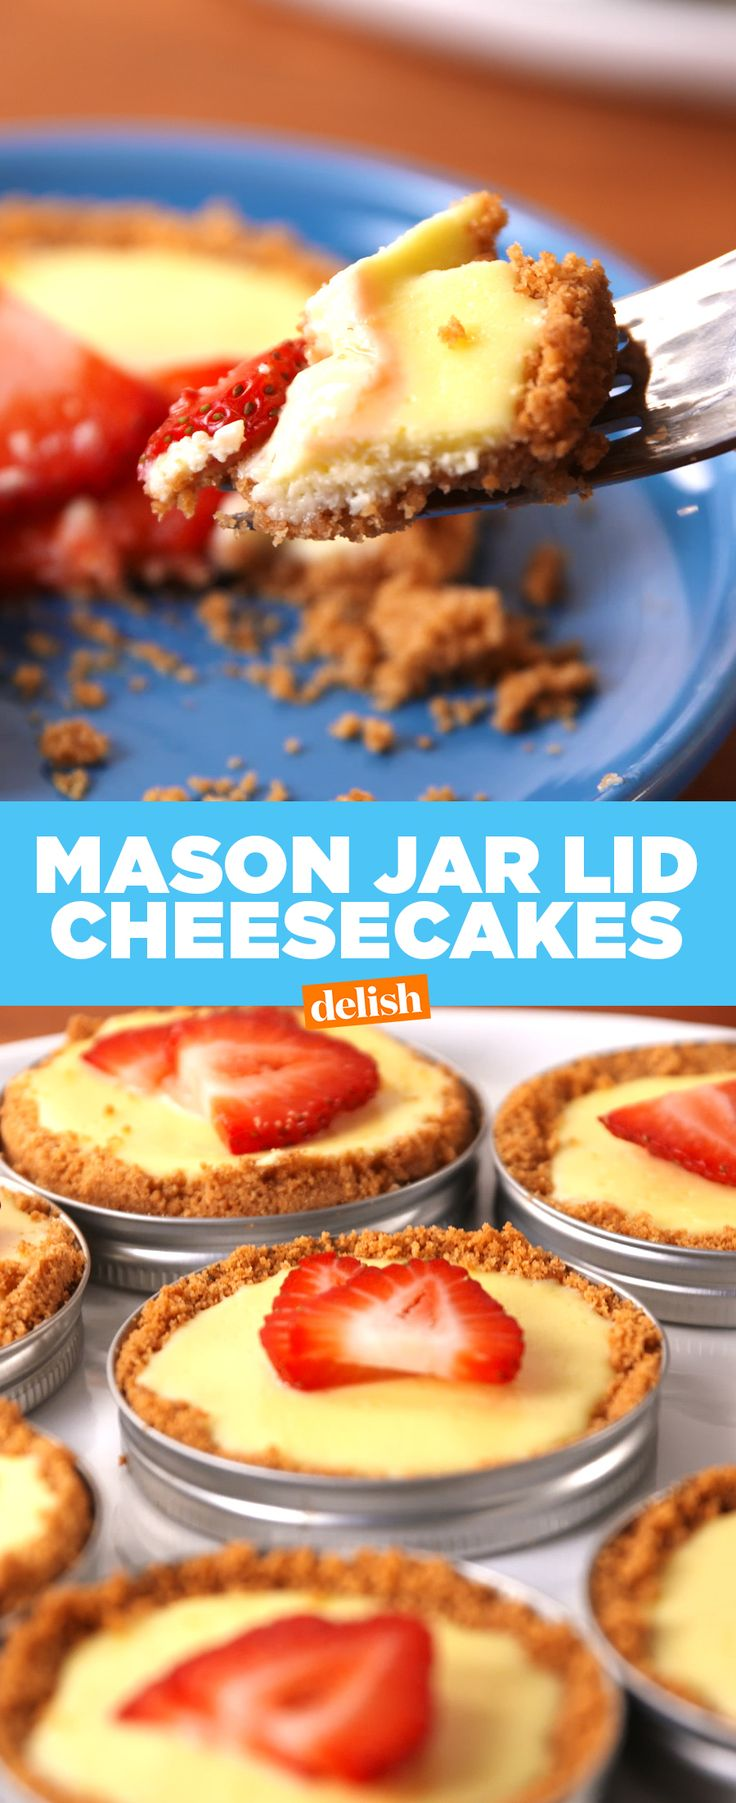 We're beyond obsessed with this mason jar hack. Get the recipe from Delish.com.